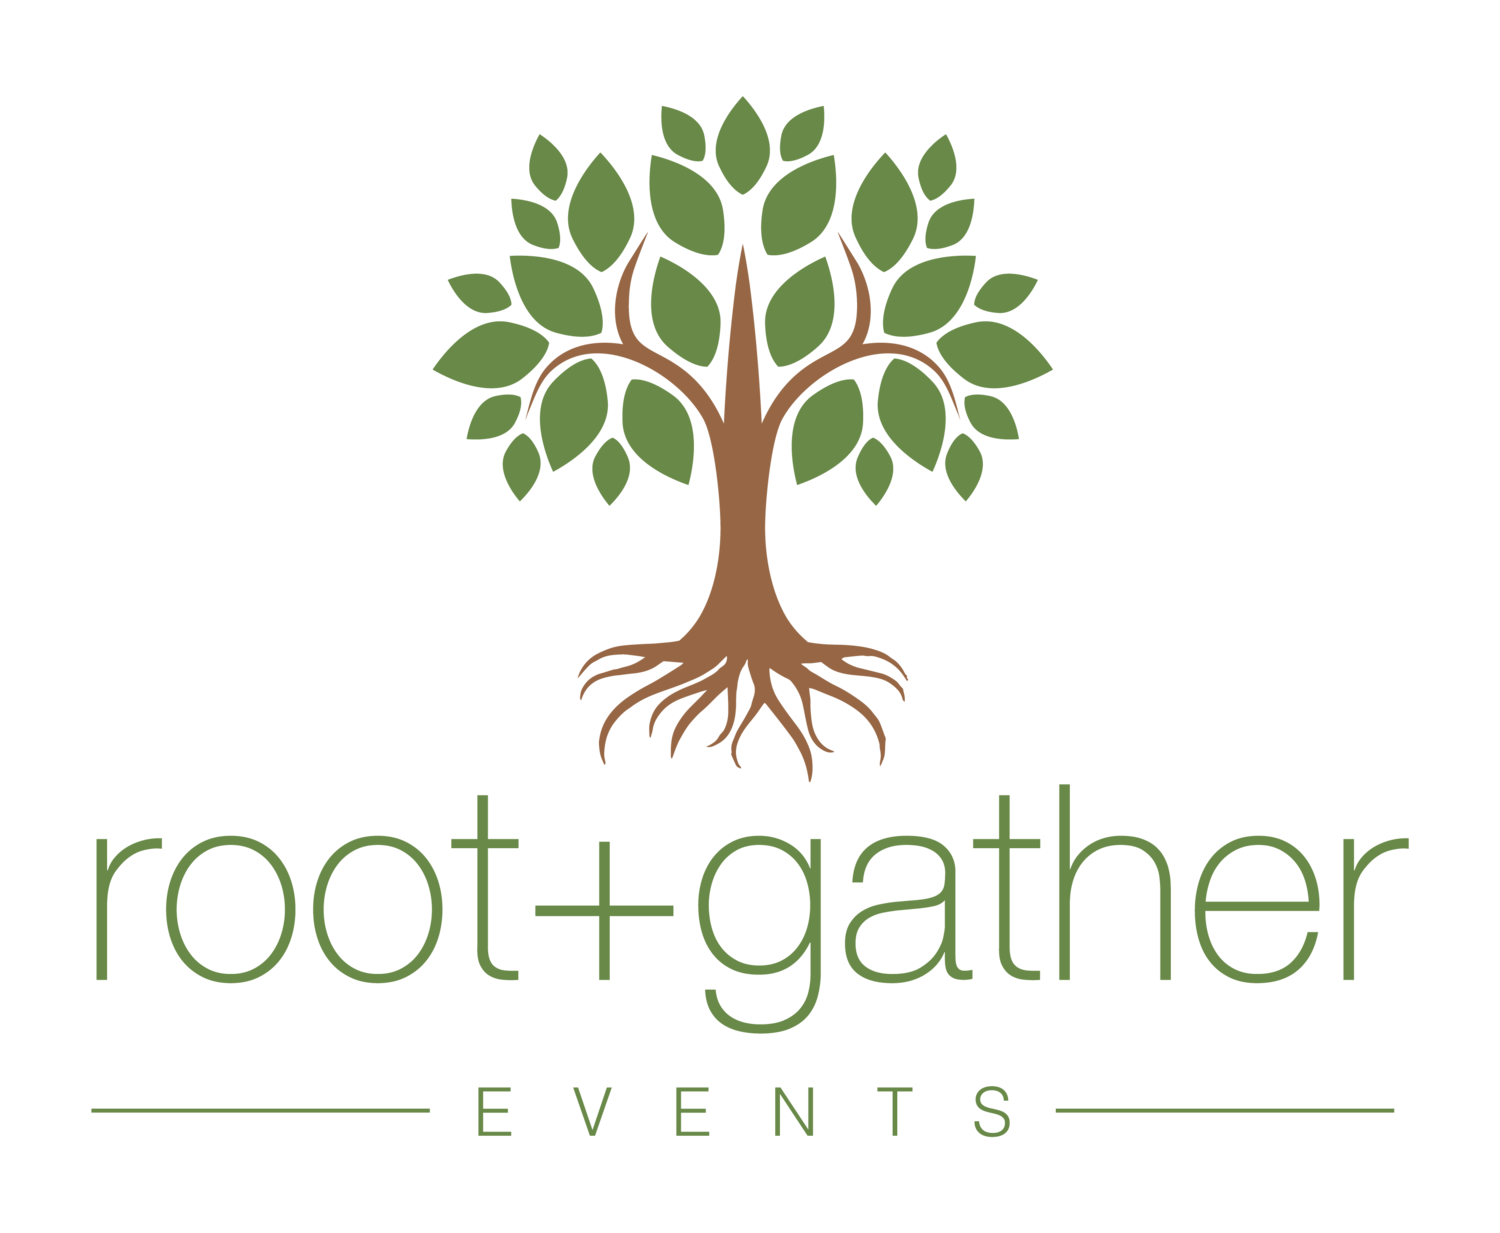 root + gather events